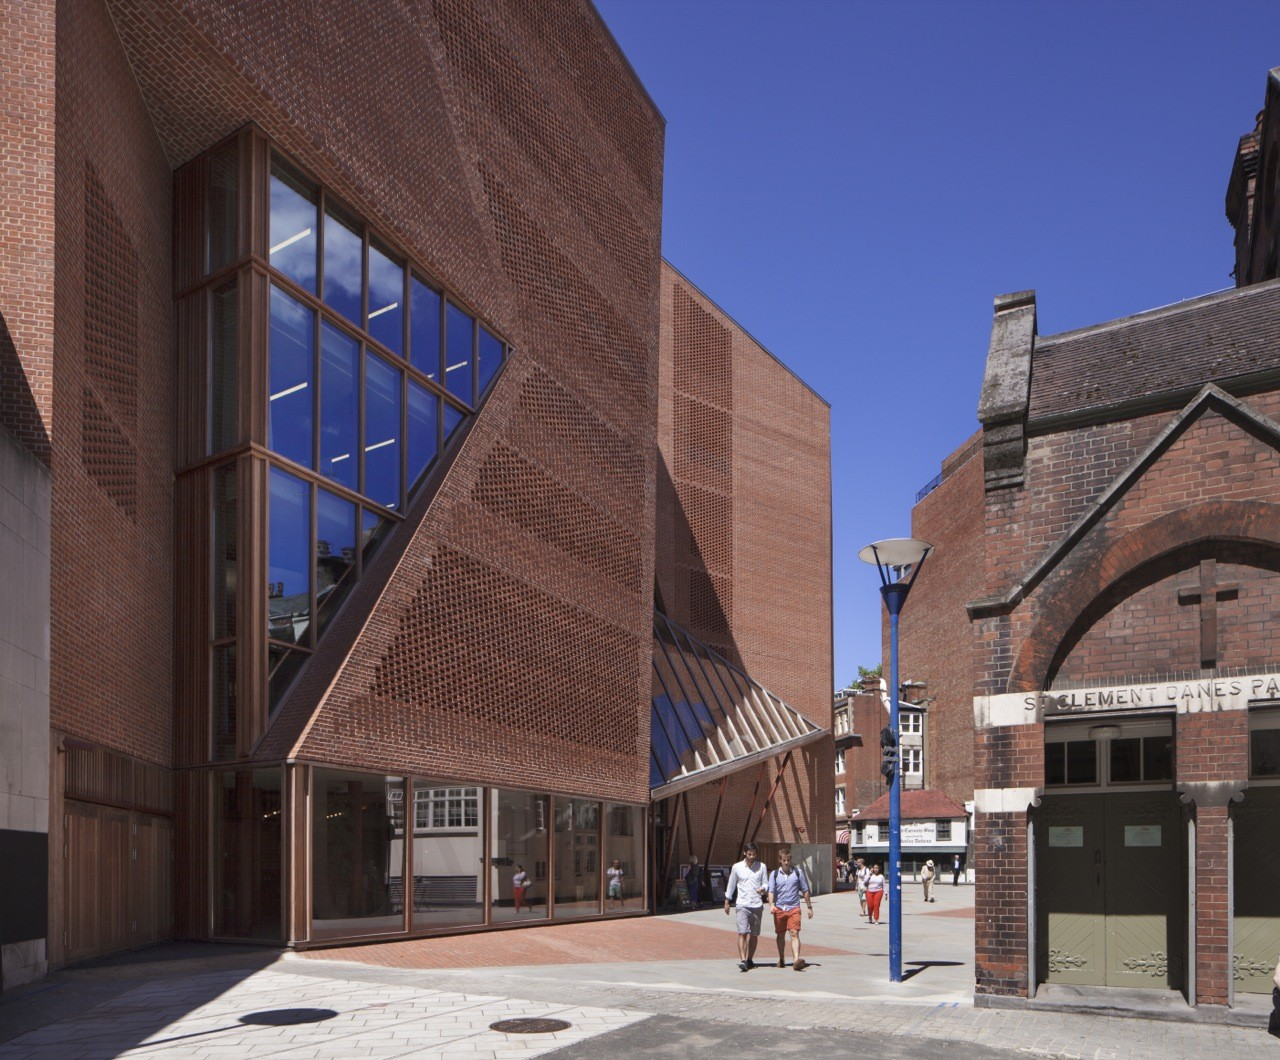 Centro de Estudiantes LSE Saw Hock / O'Donnell + Tuomey Architects, © Alex Bland